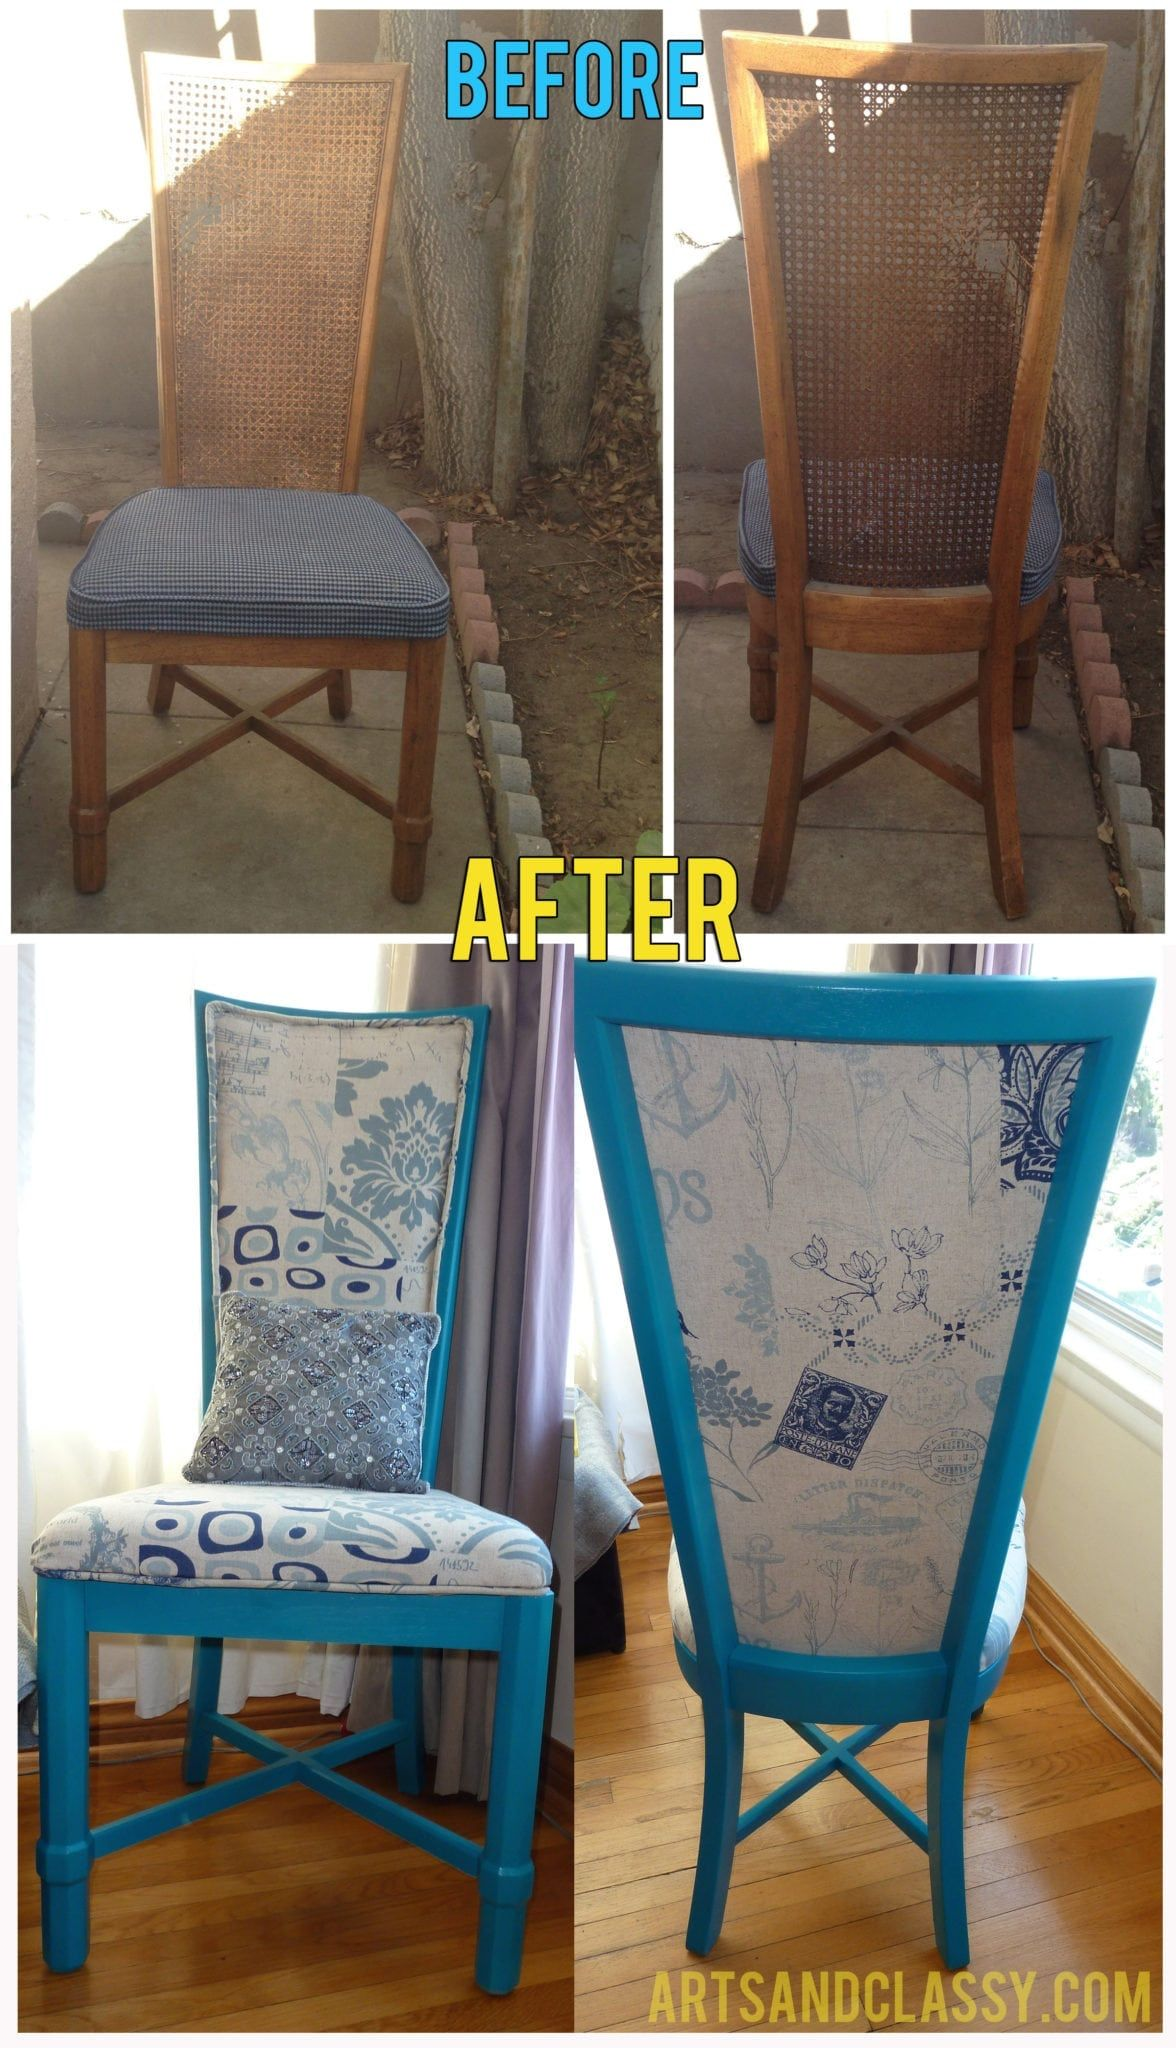 Curbside Furniture That Get Flipped Into Something Beautiful Arts And Classy Reupholster Furniture Cane Chair Makeover Diy Chair